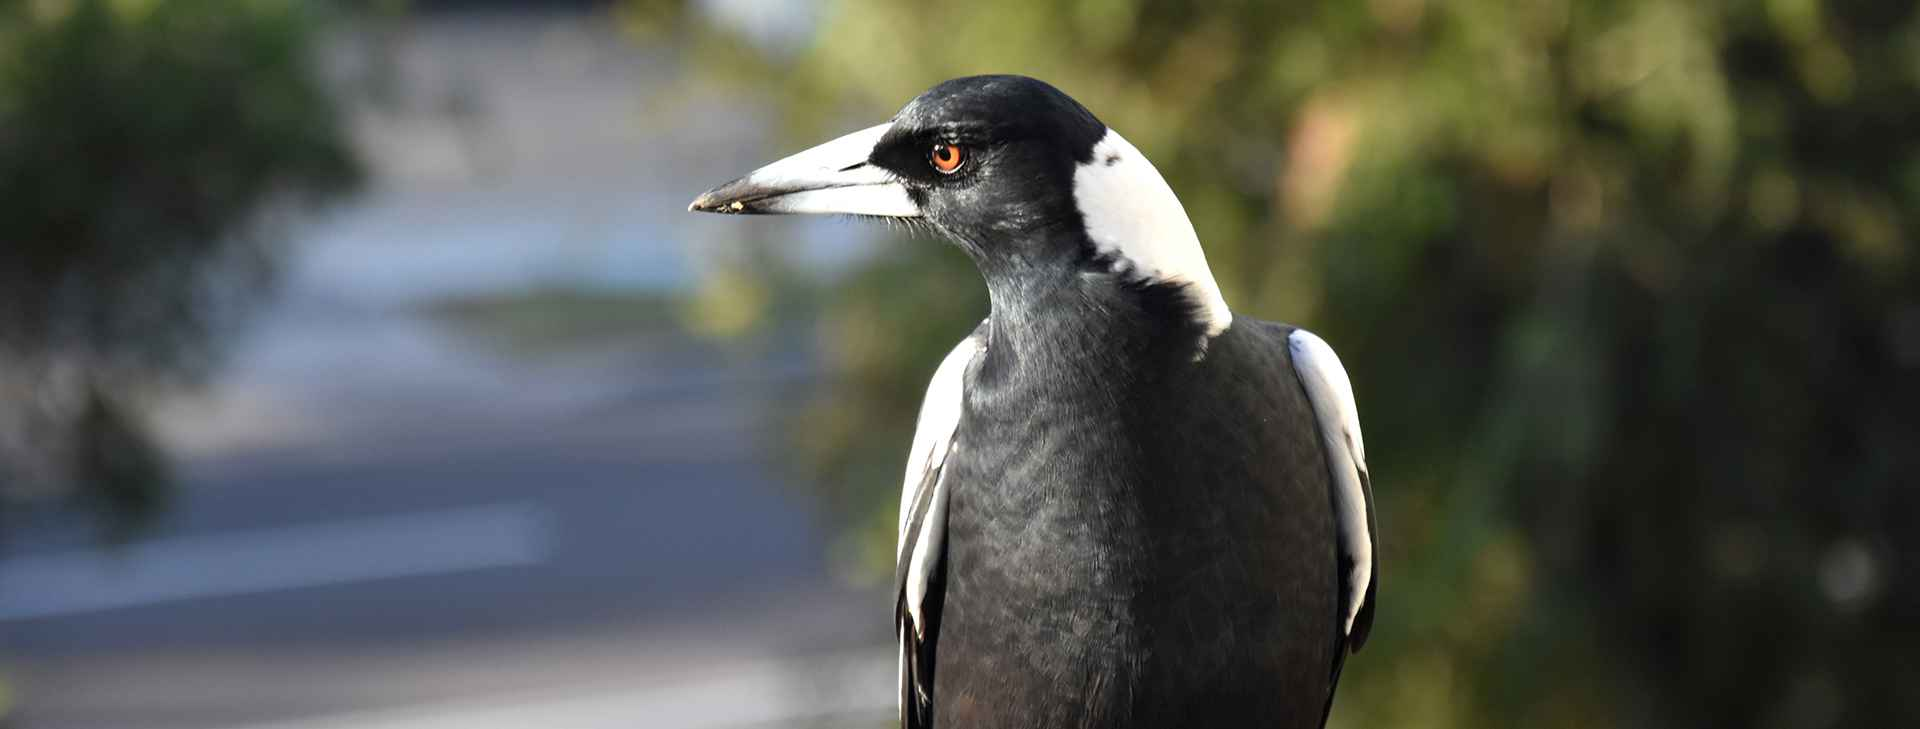 Magpie - Webpage